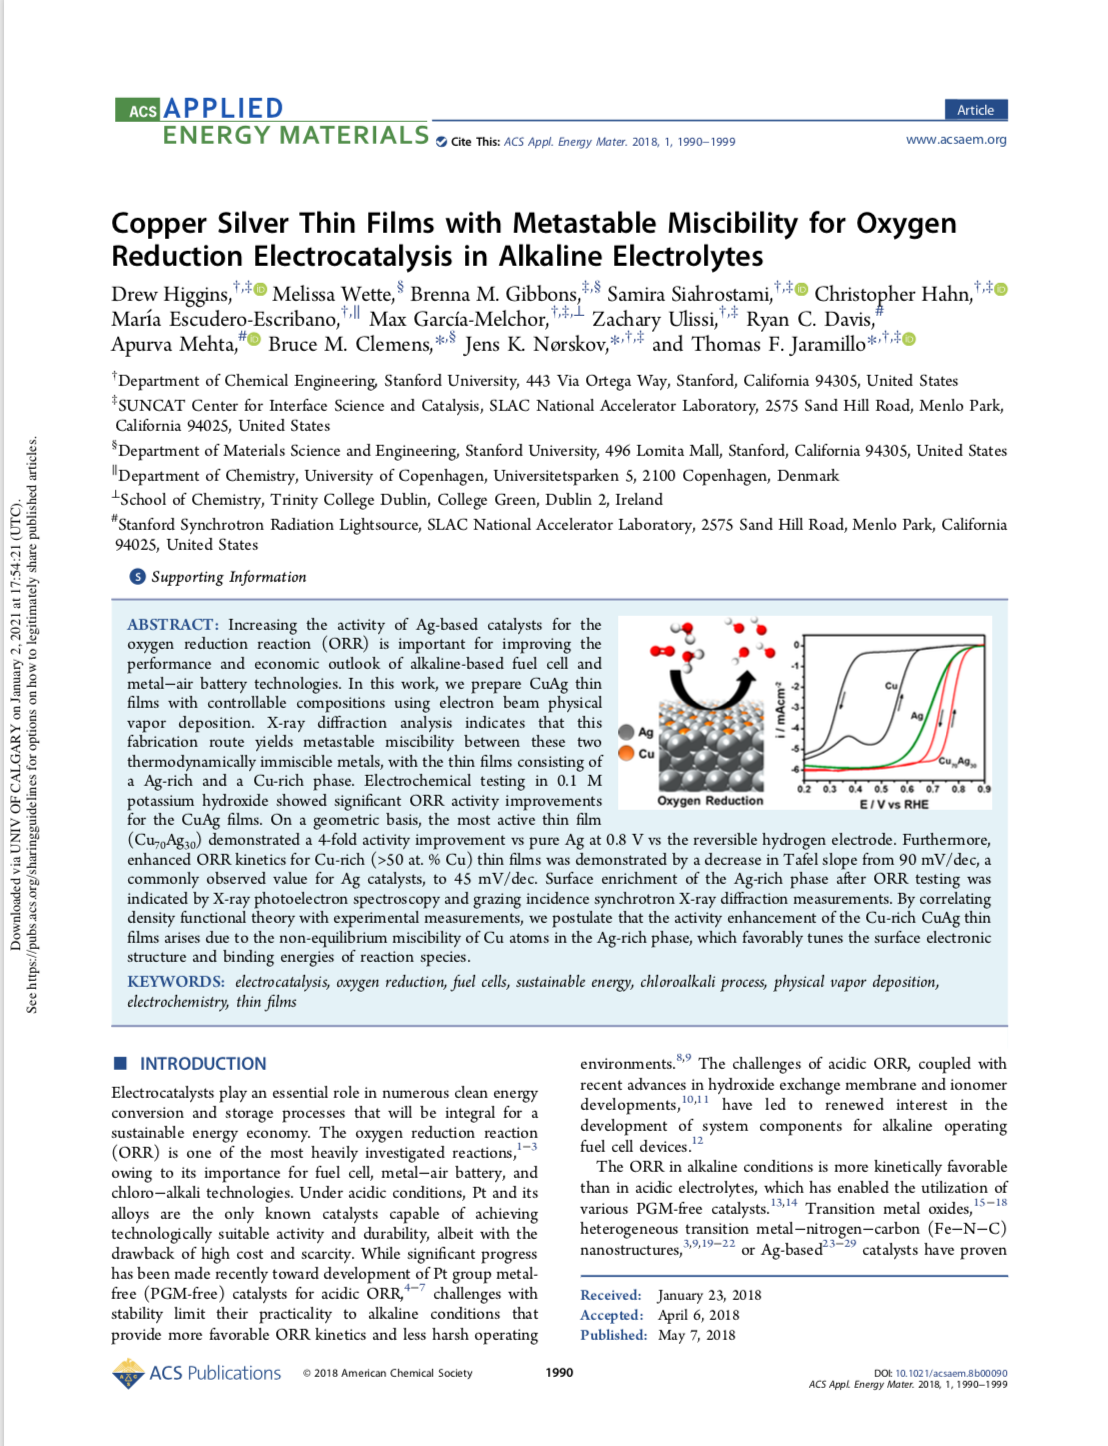 Copper Silver Thin Films with Metastable Miscibility for Oxygen Reduction Electrocatalysis in Alkali